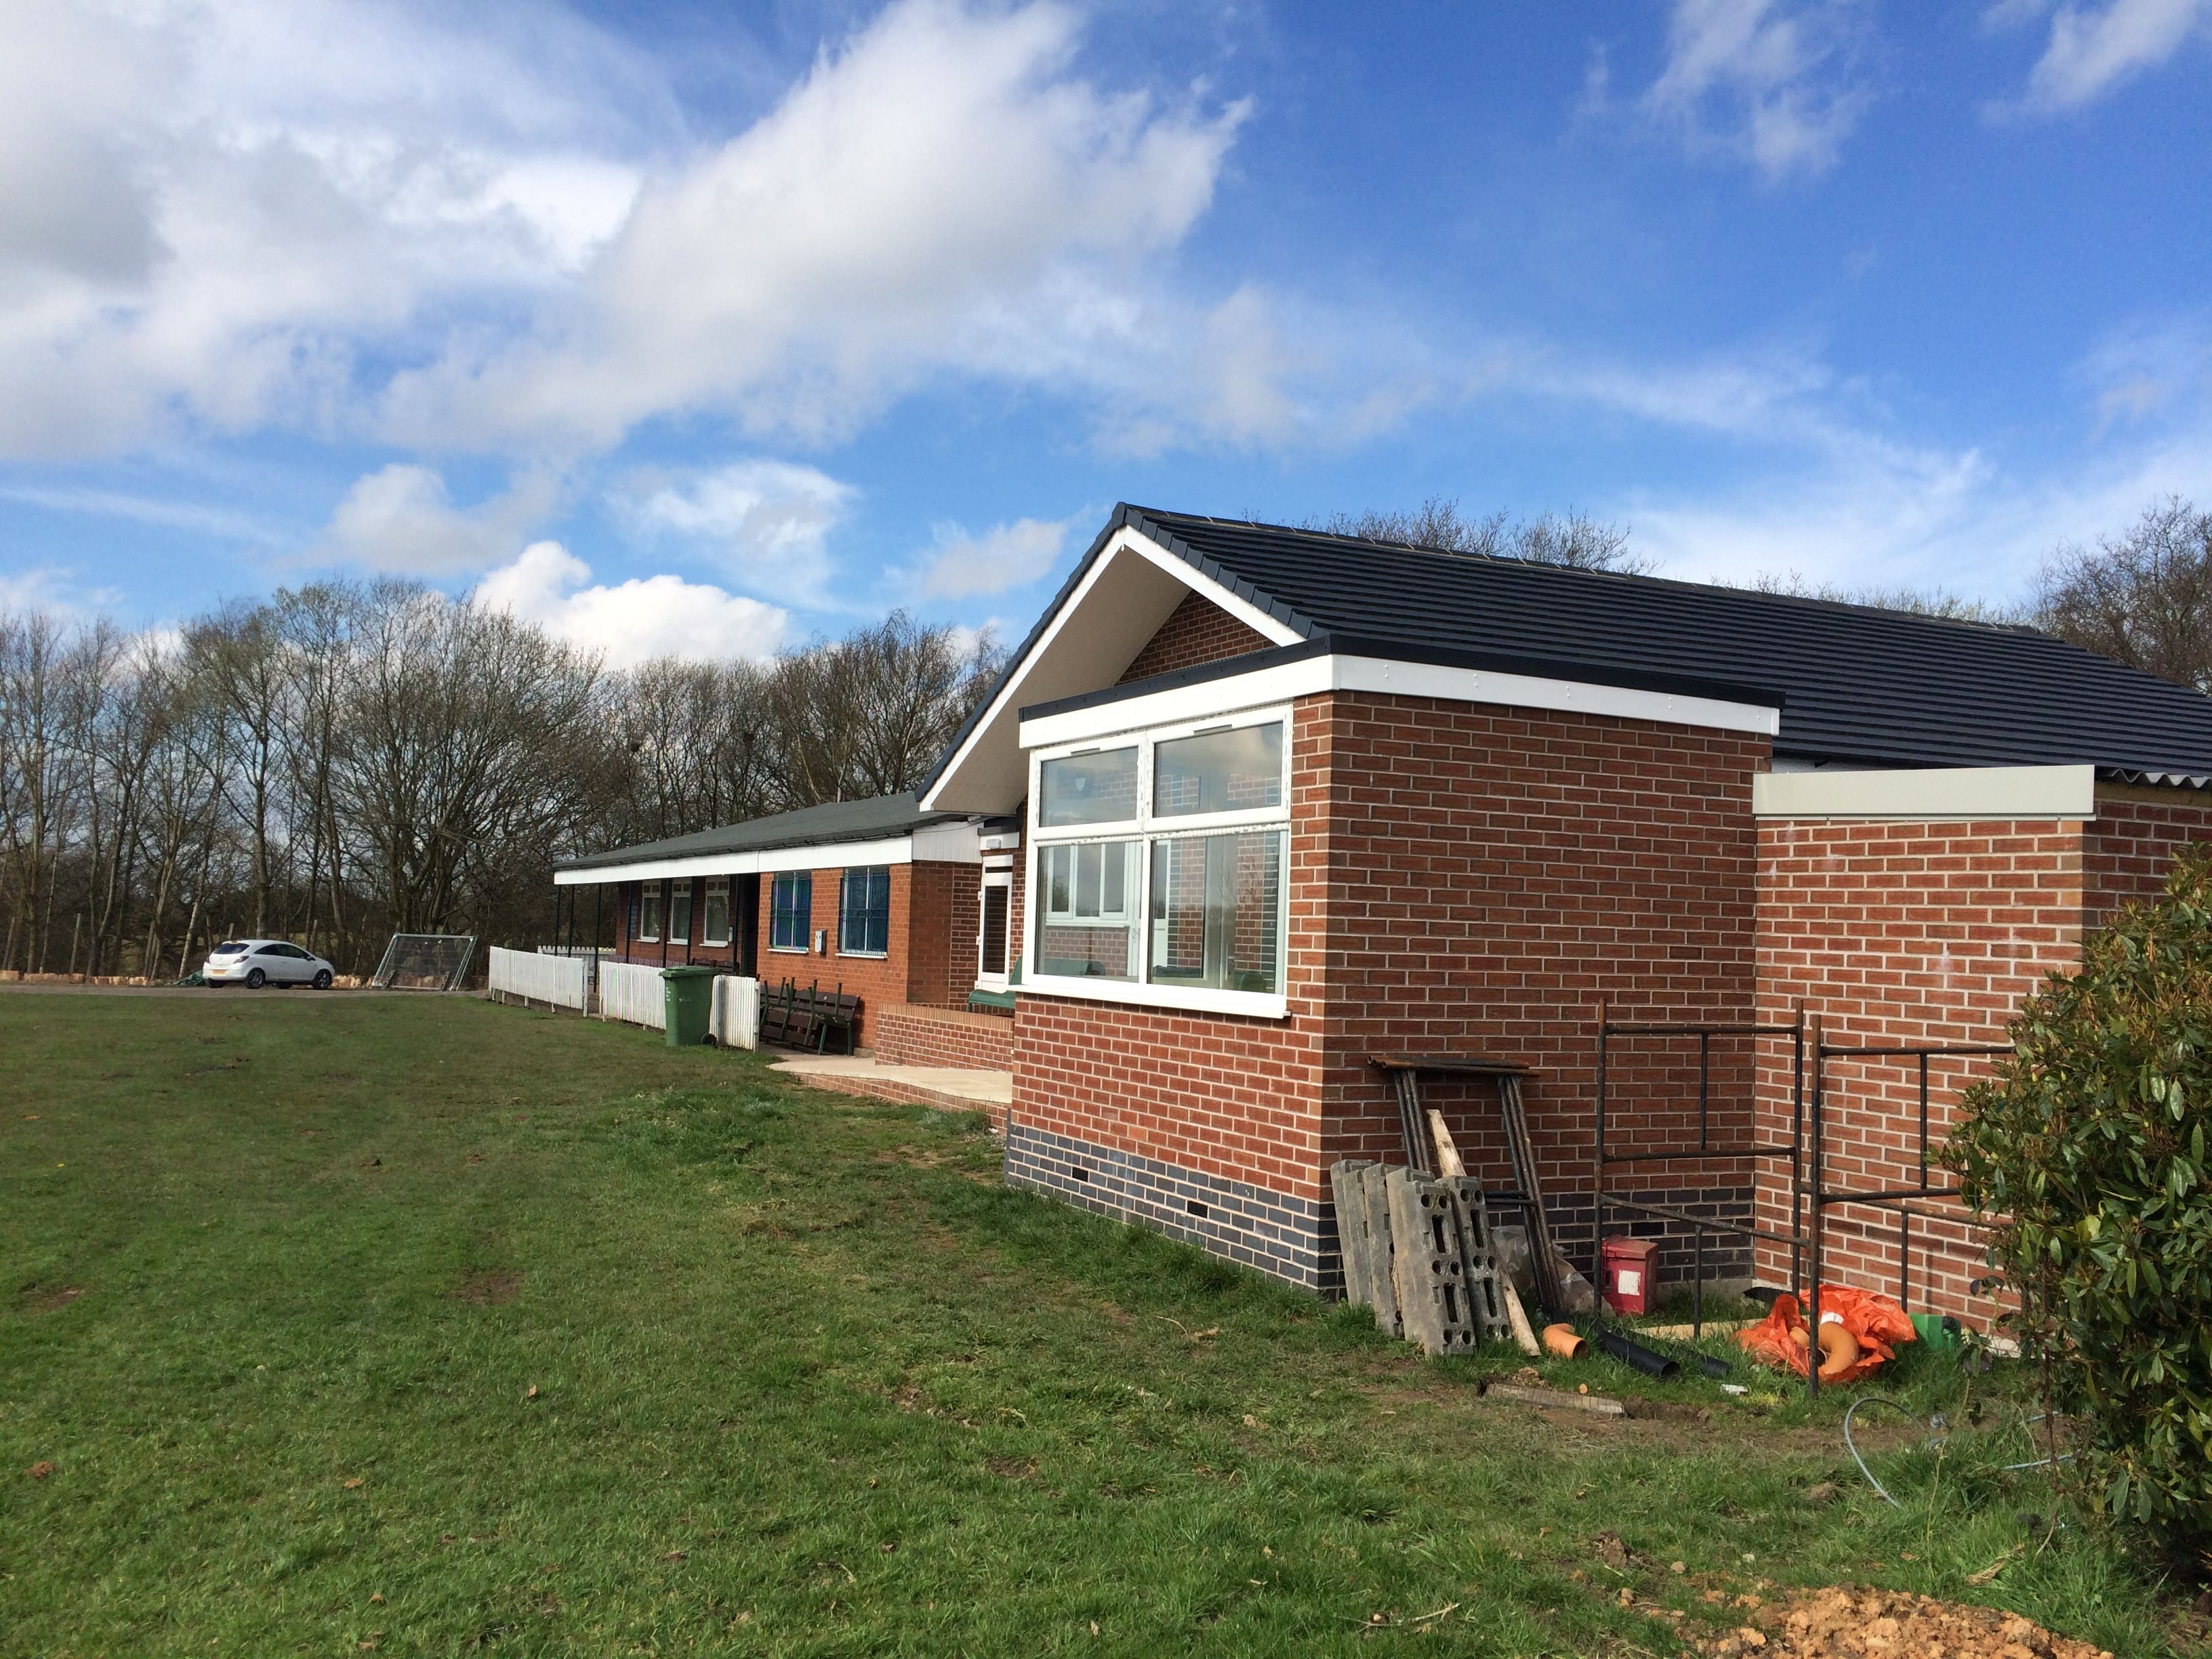 New Scorebox and Changing Rooms